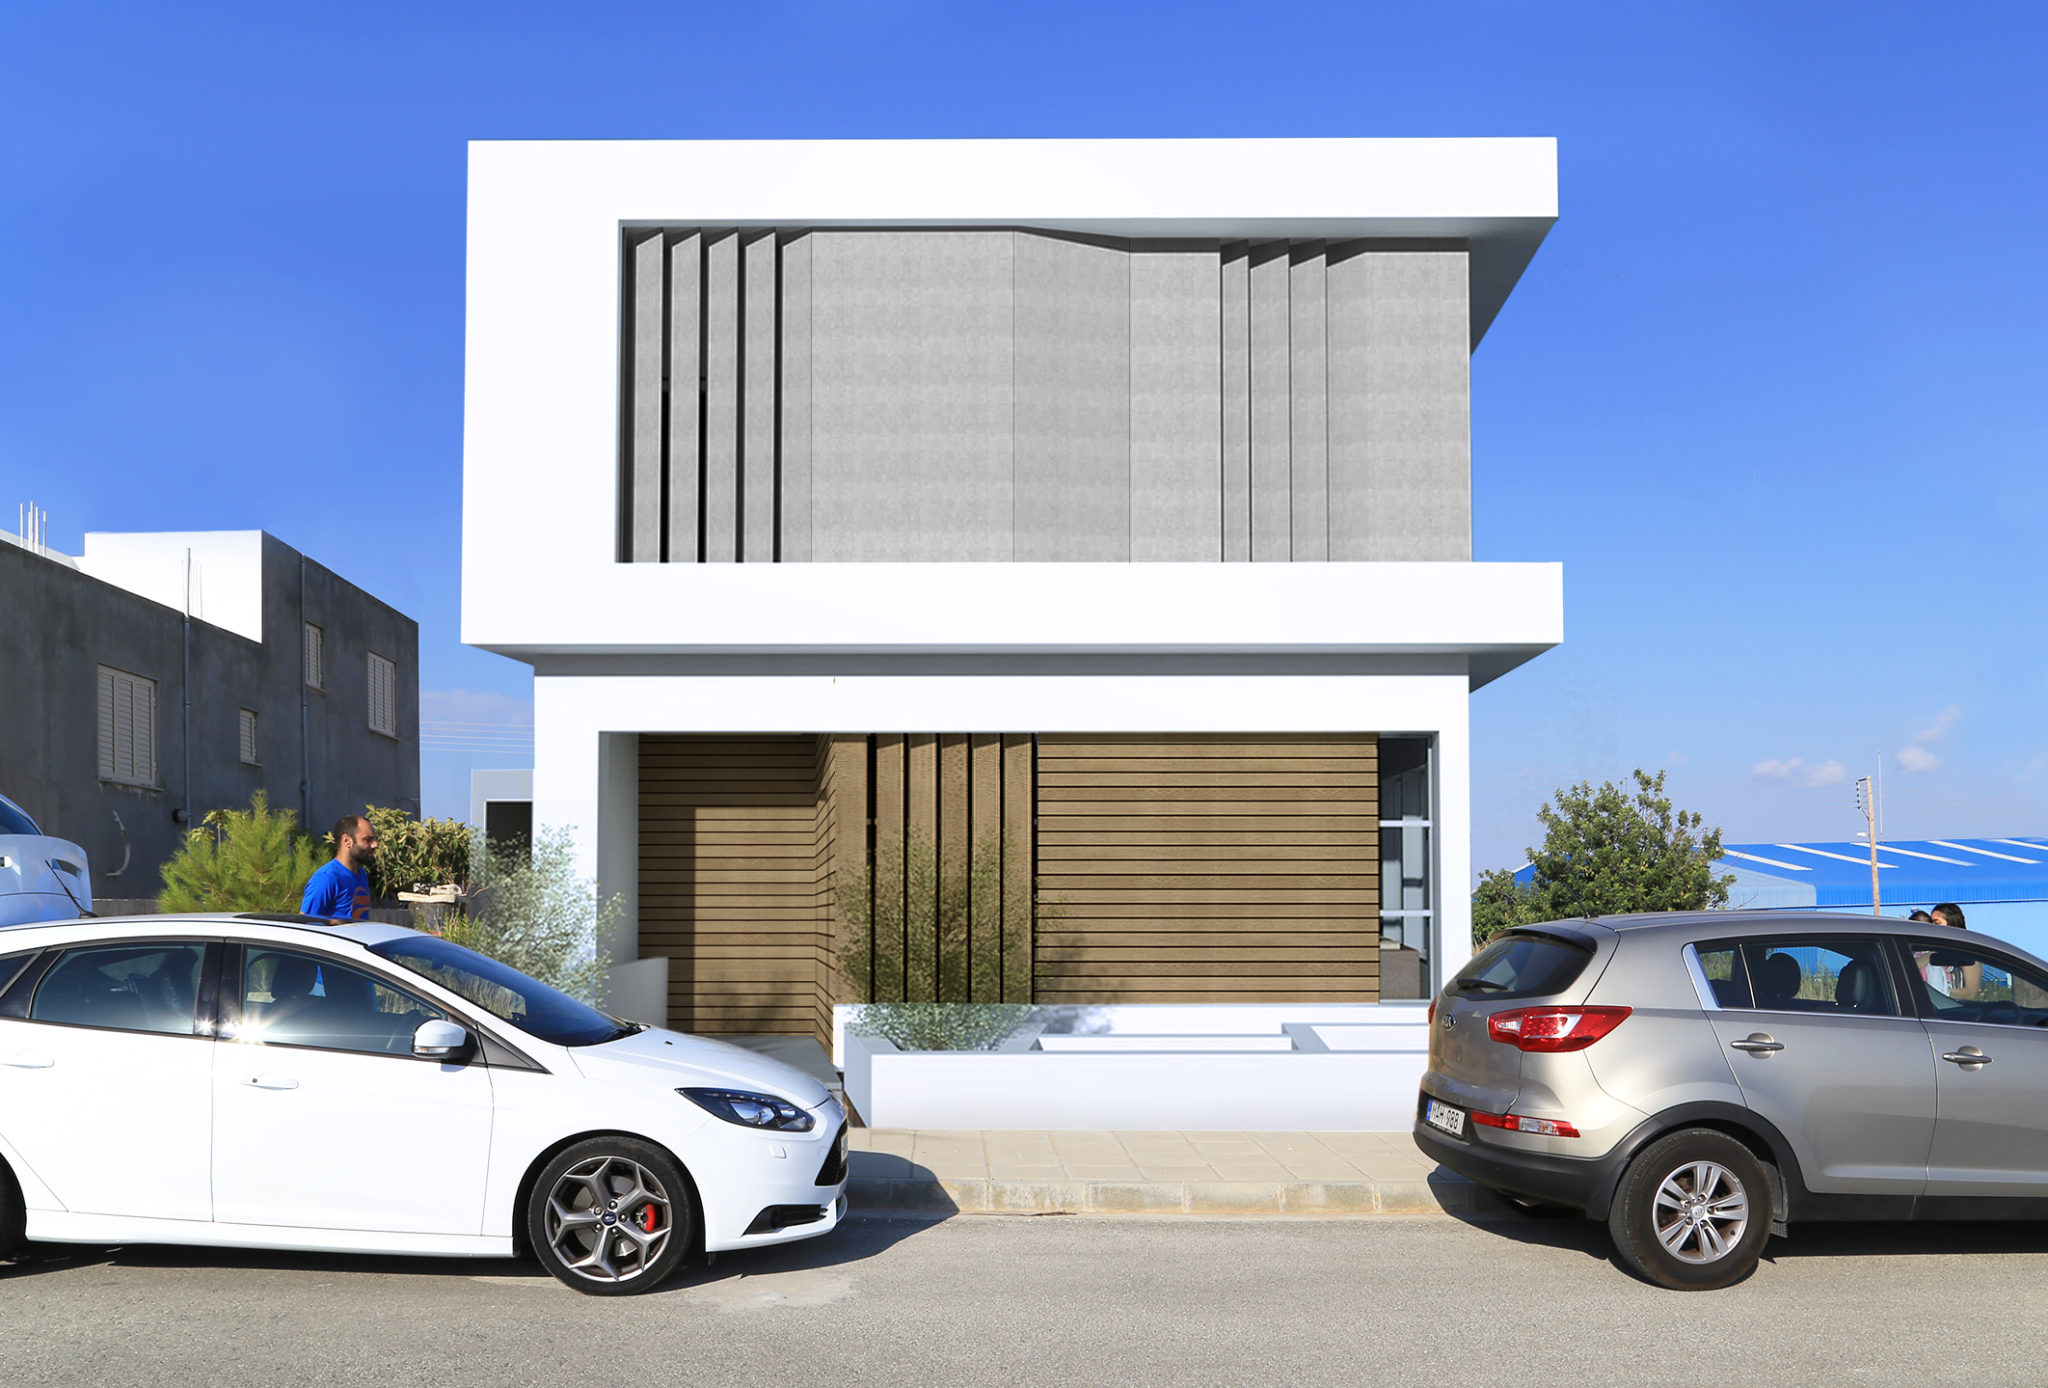 Limassol architects